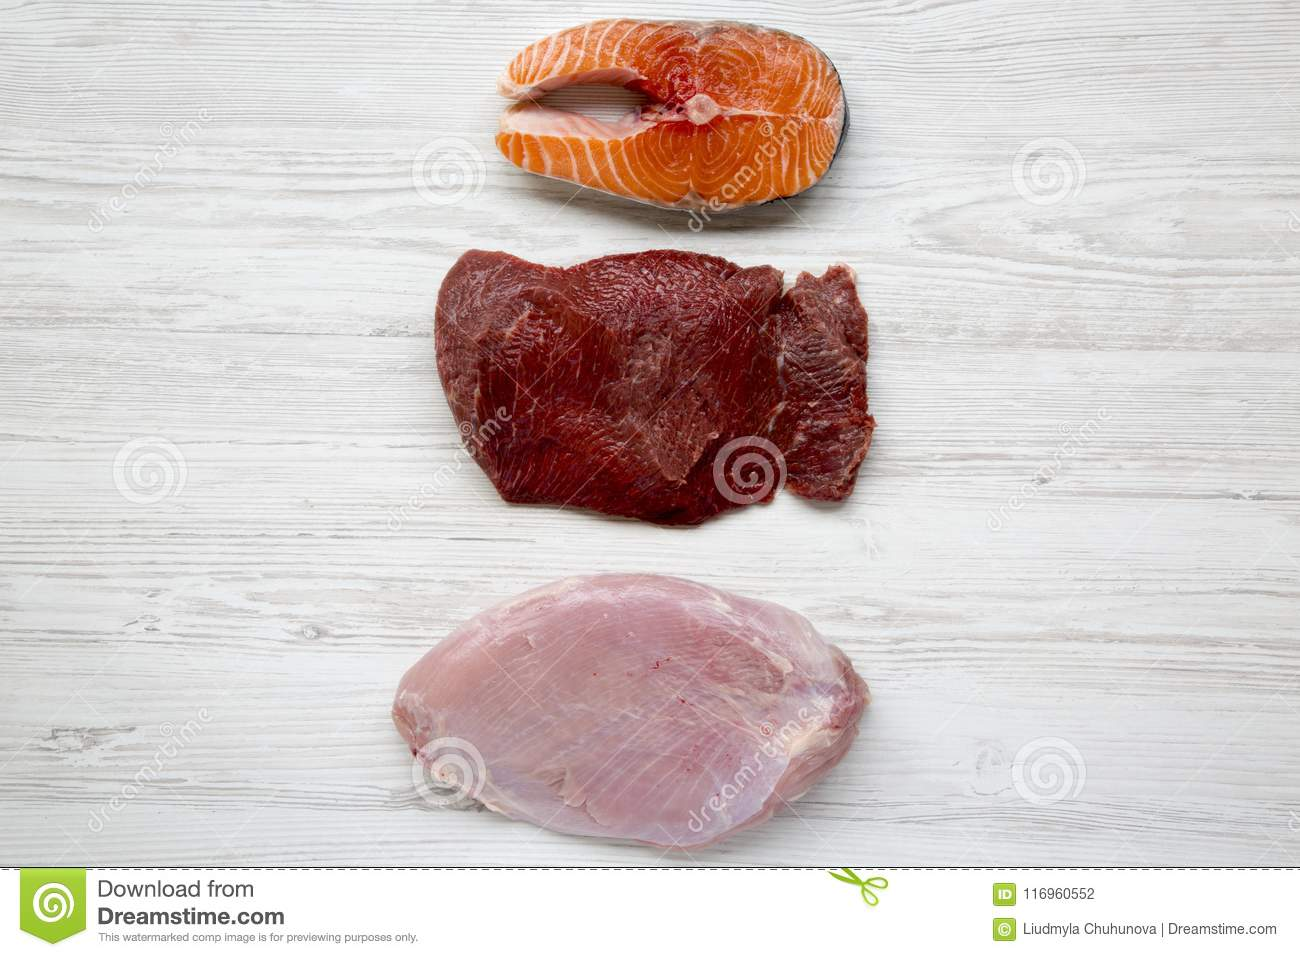 Uncooked raw salmon steak, beef meat and turkey breast on white wooden background, top view. Flat lay.